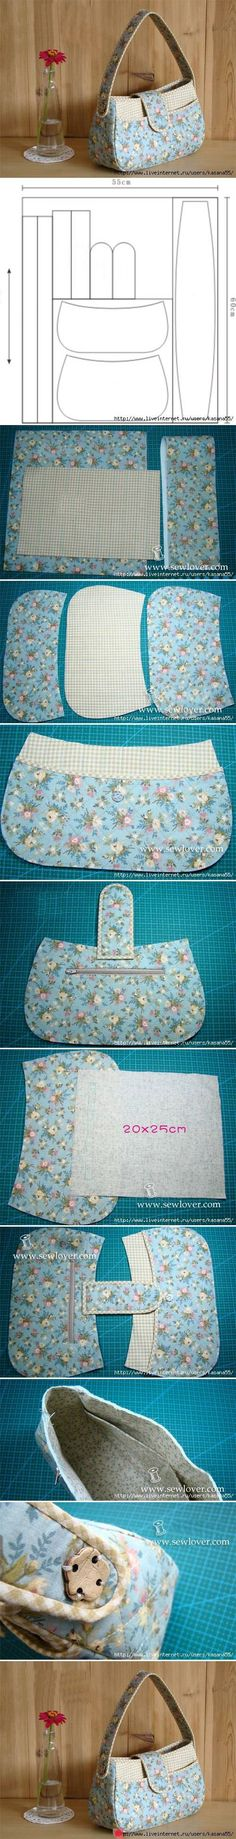 Bag pattern in pictures